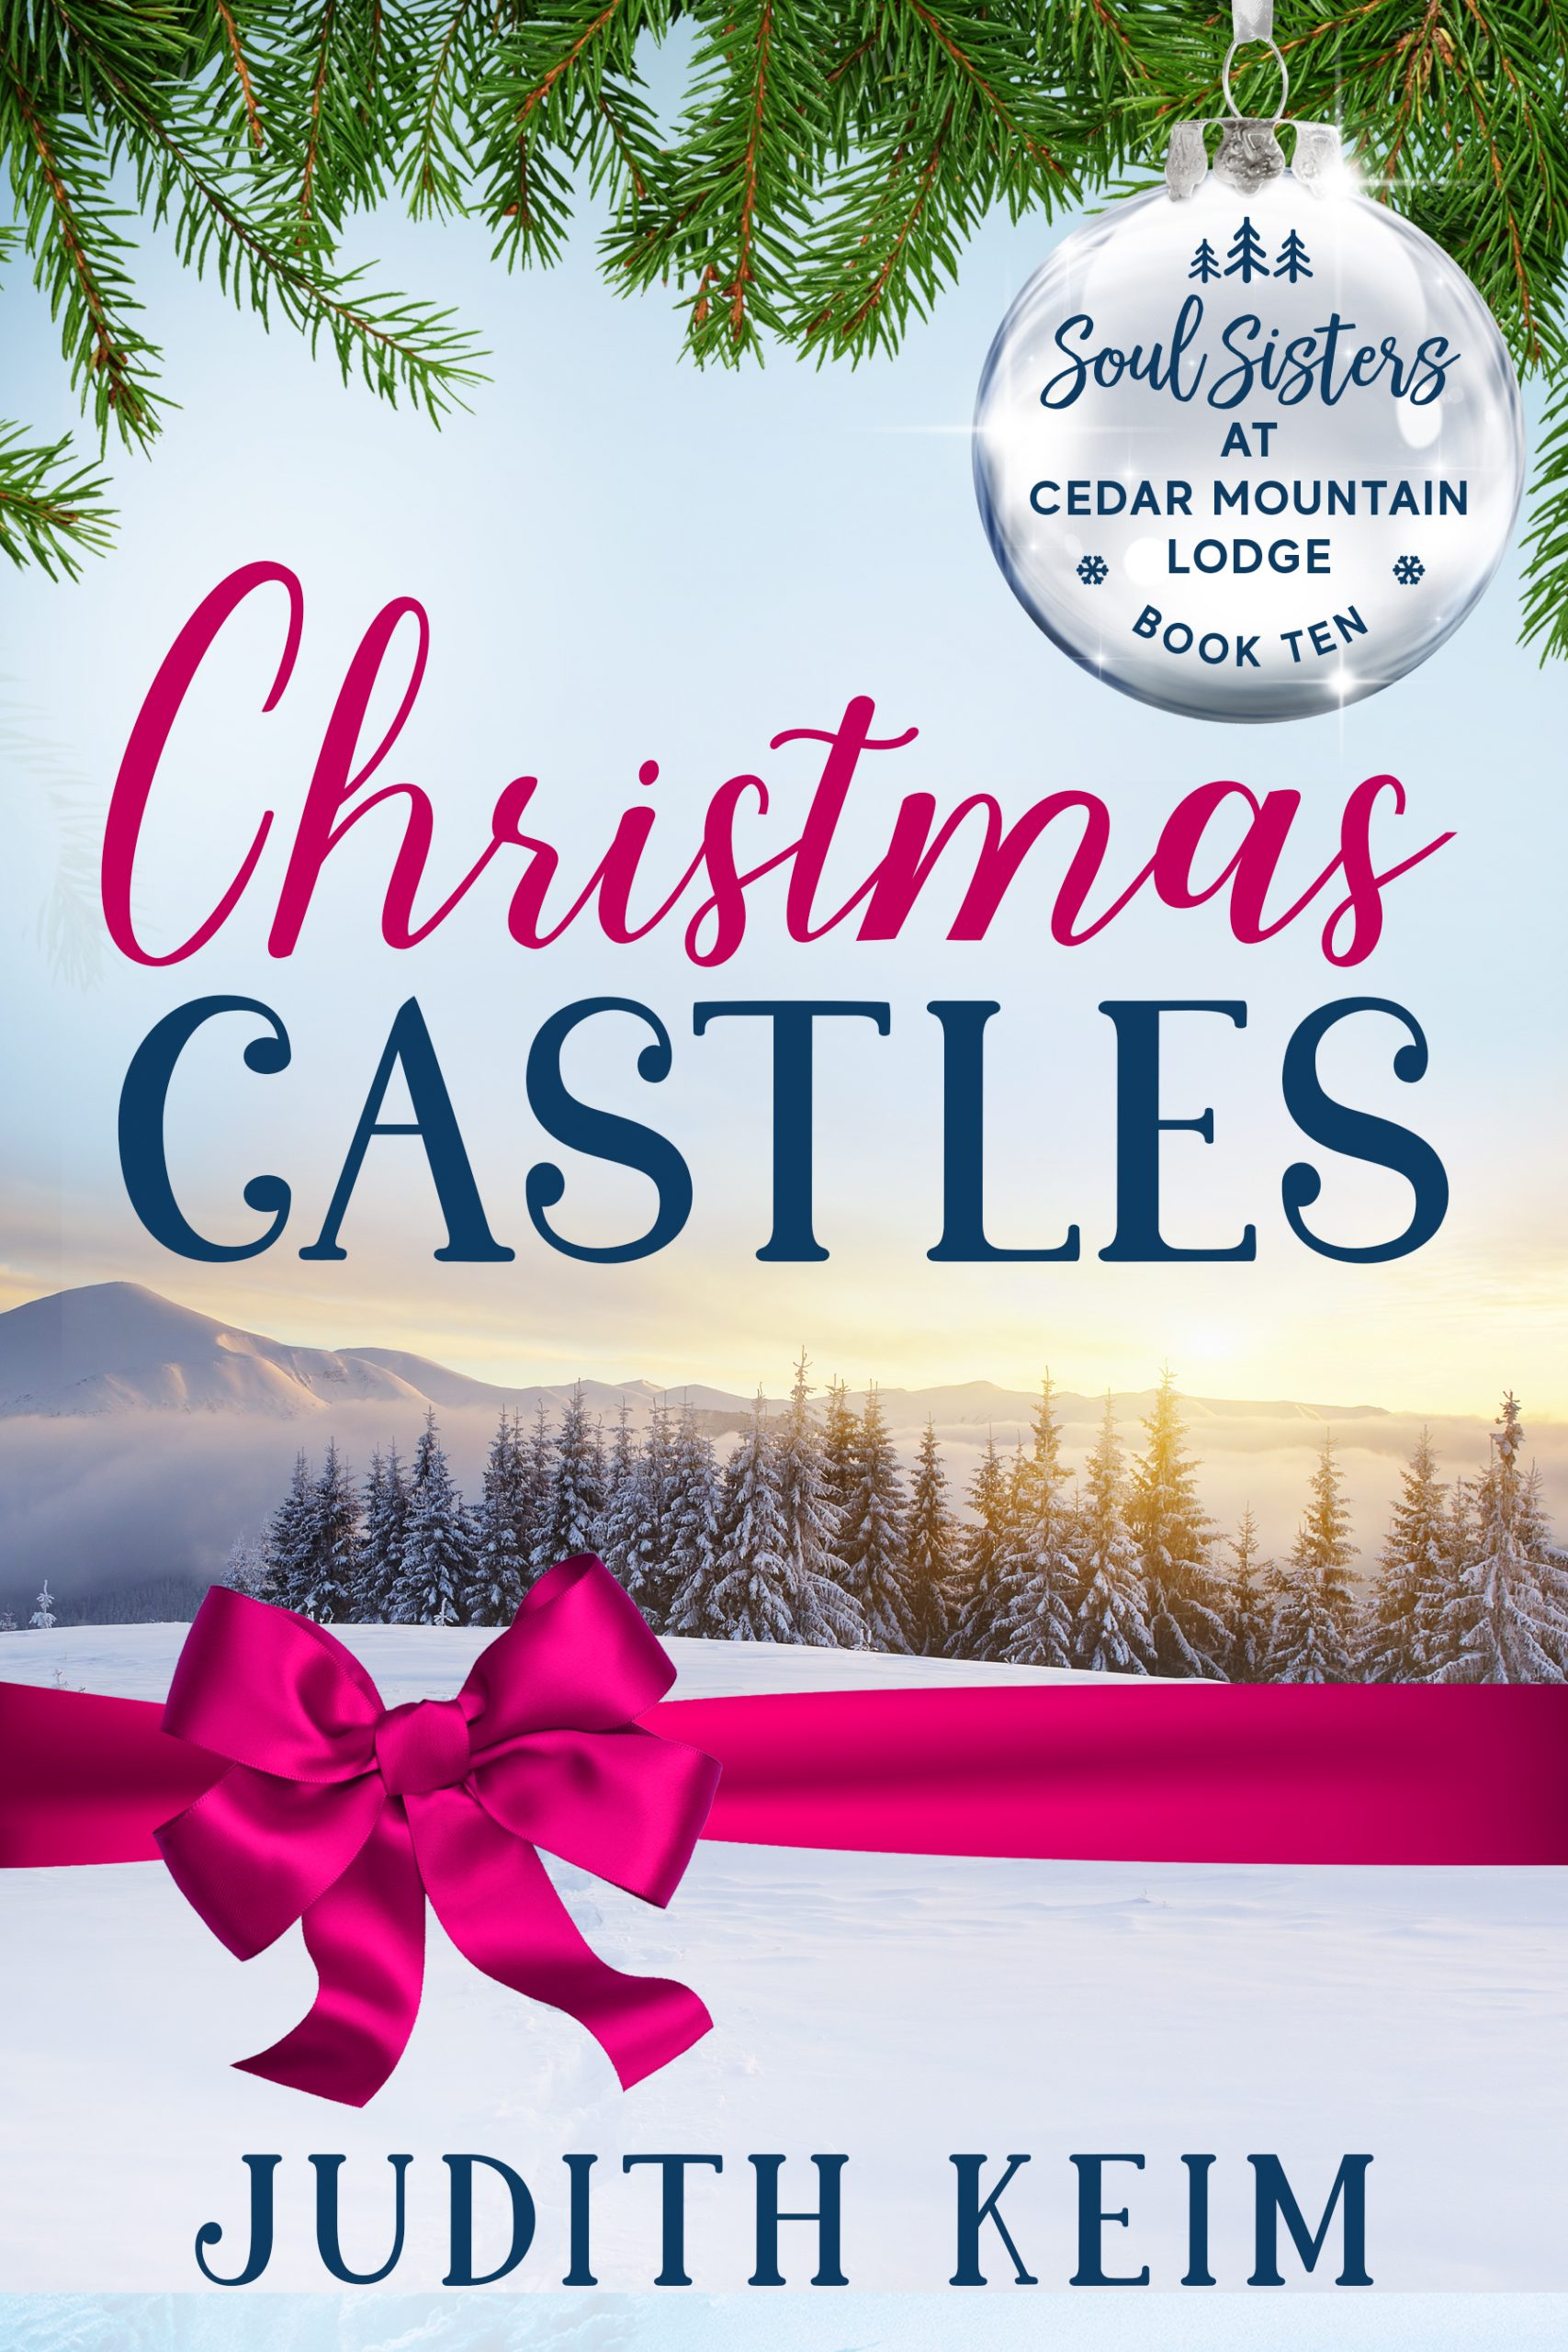 Book10_ChristmasCastles